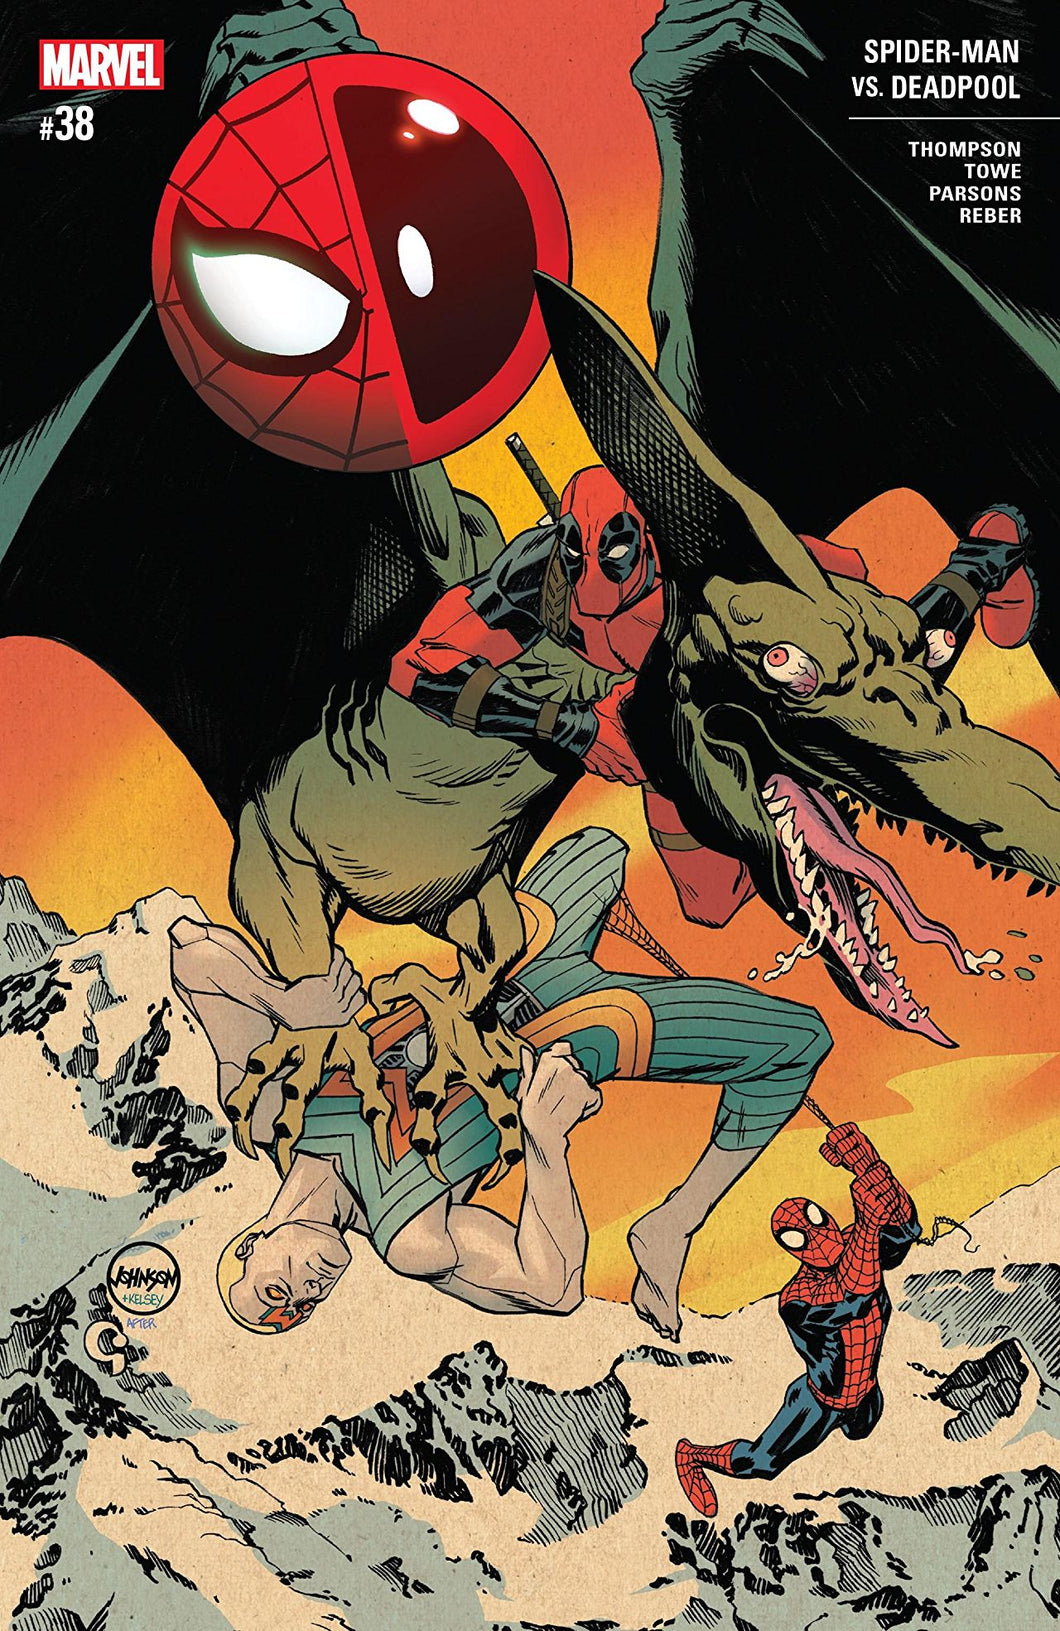 SPIDER-MAN DEADPOOL #38 (09/05/2018)